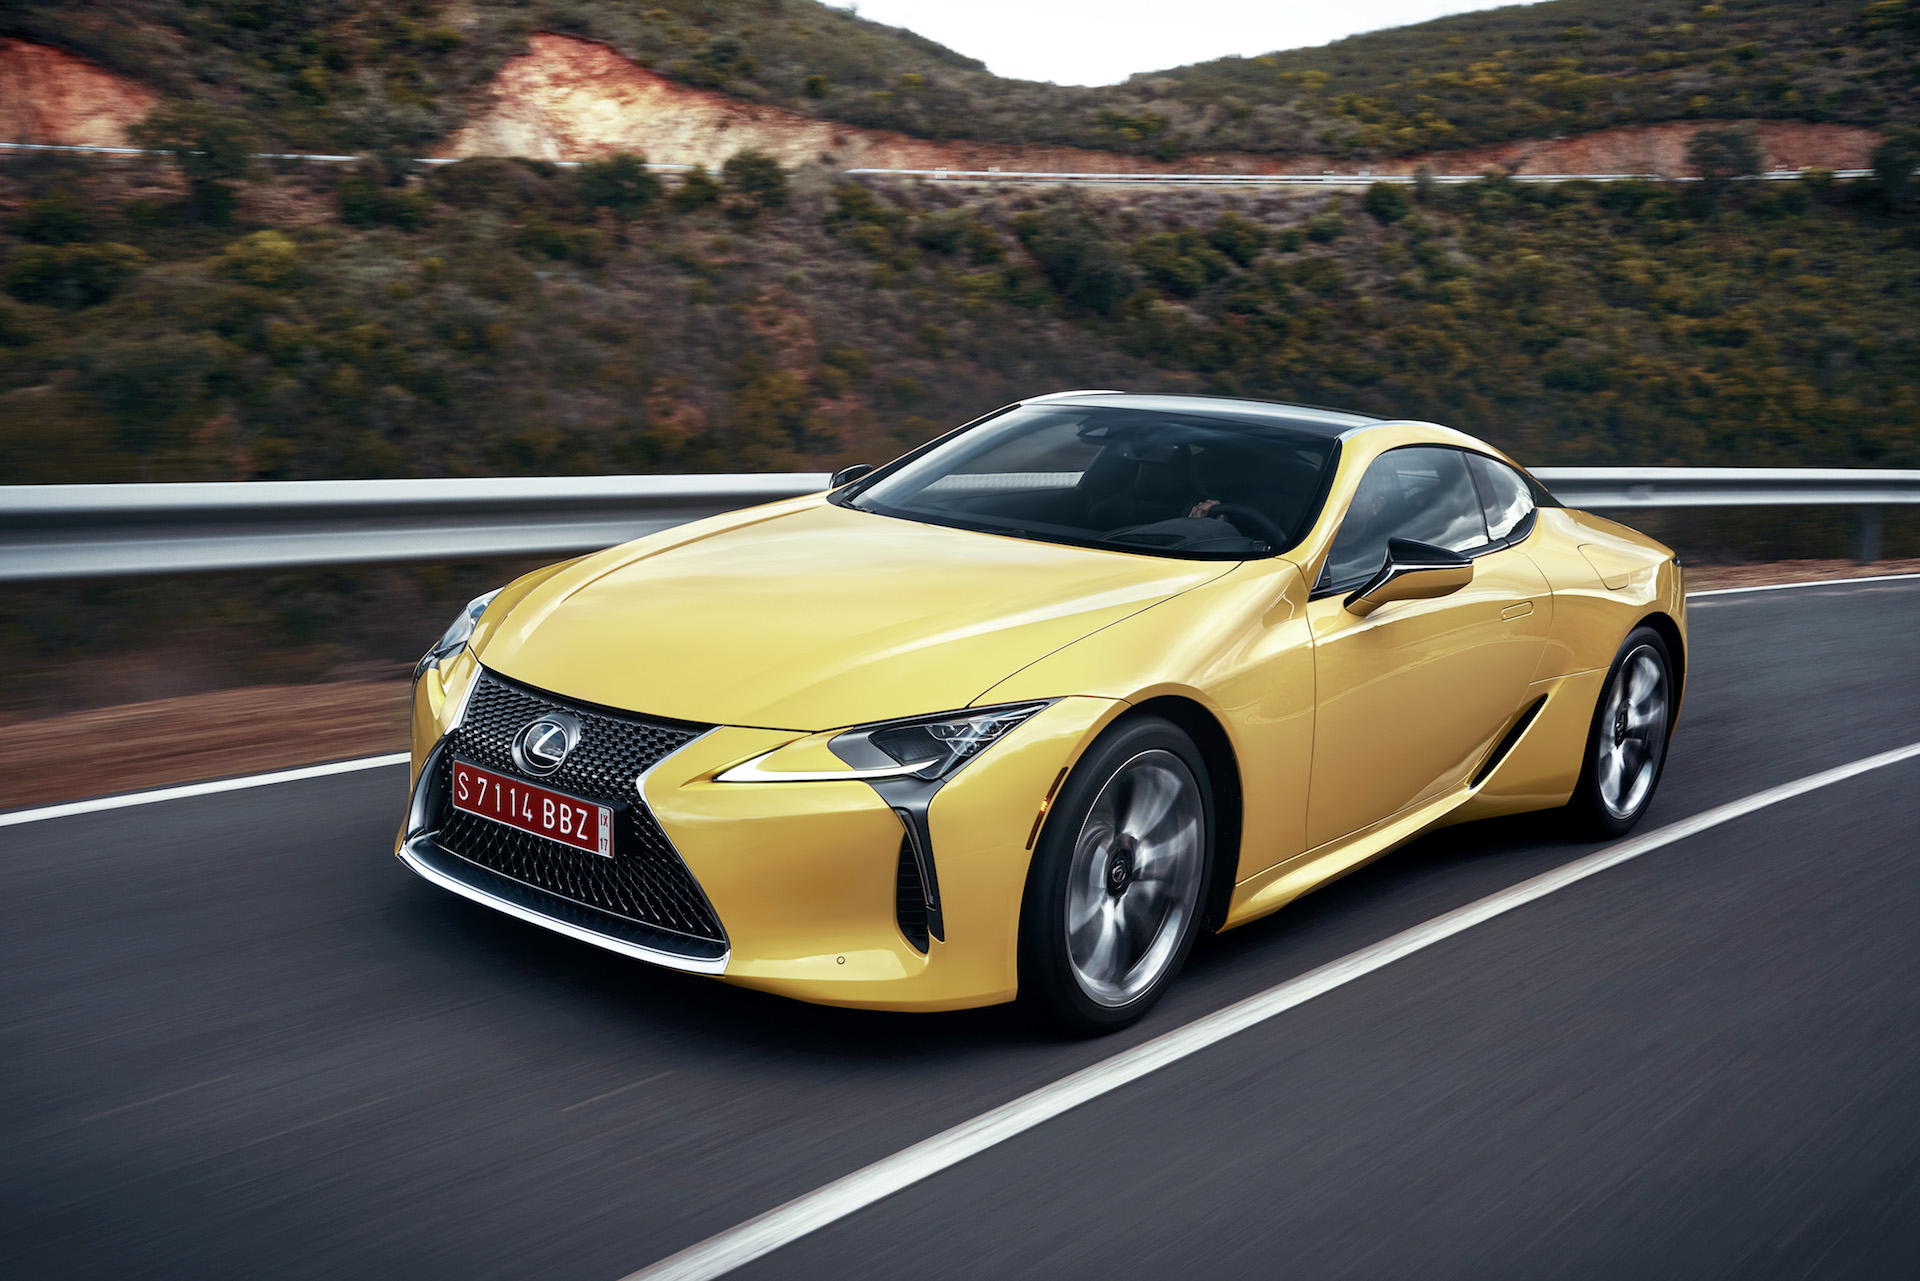 2019 Lexus Lc 500 Preview >> 2018 Lexus LC 500 first drive review